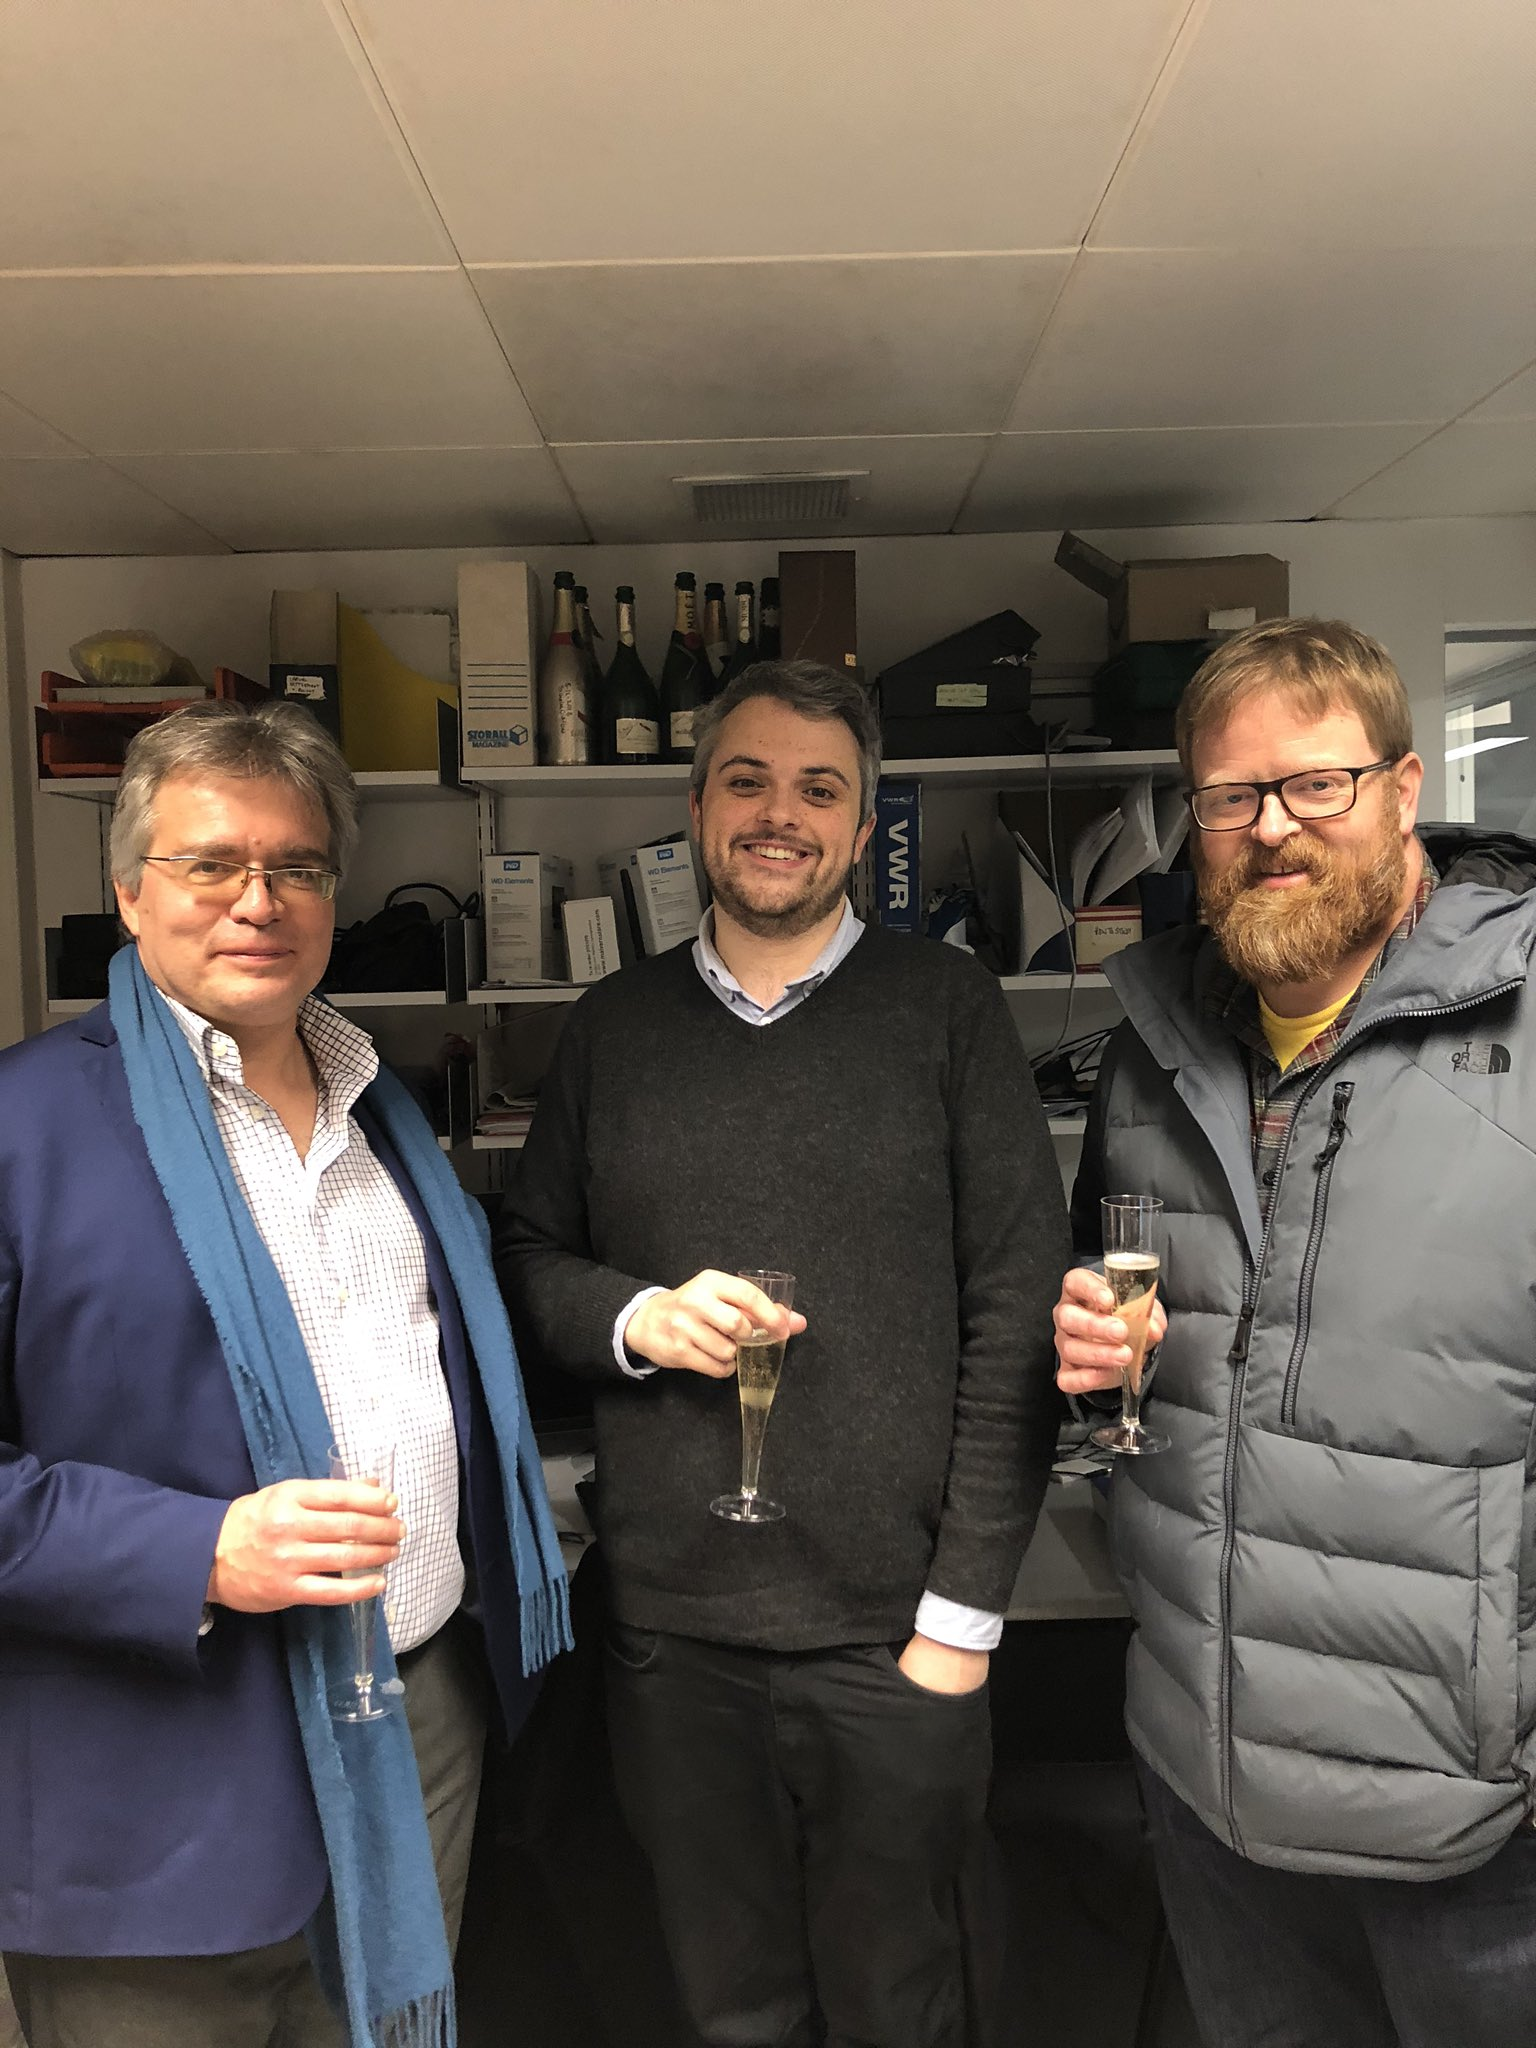 Congratulations to Dr. Philip Ferguson on successfully defending his PhD thesis!